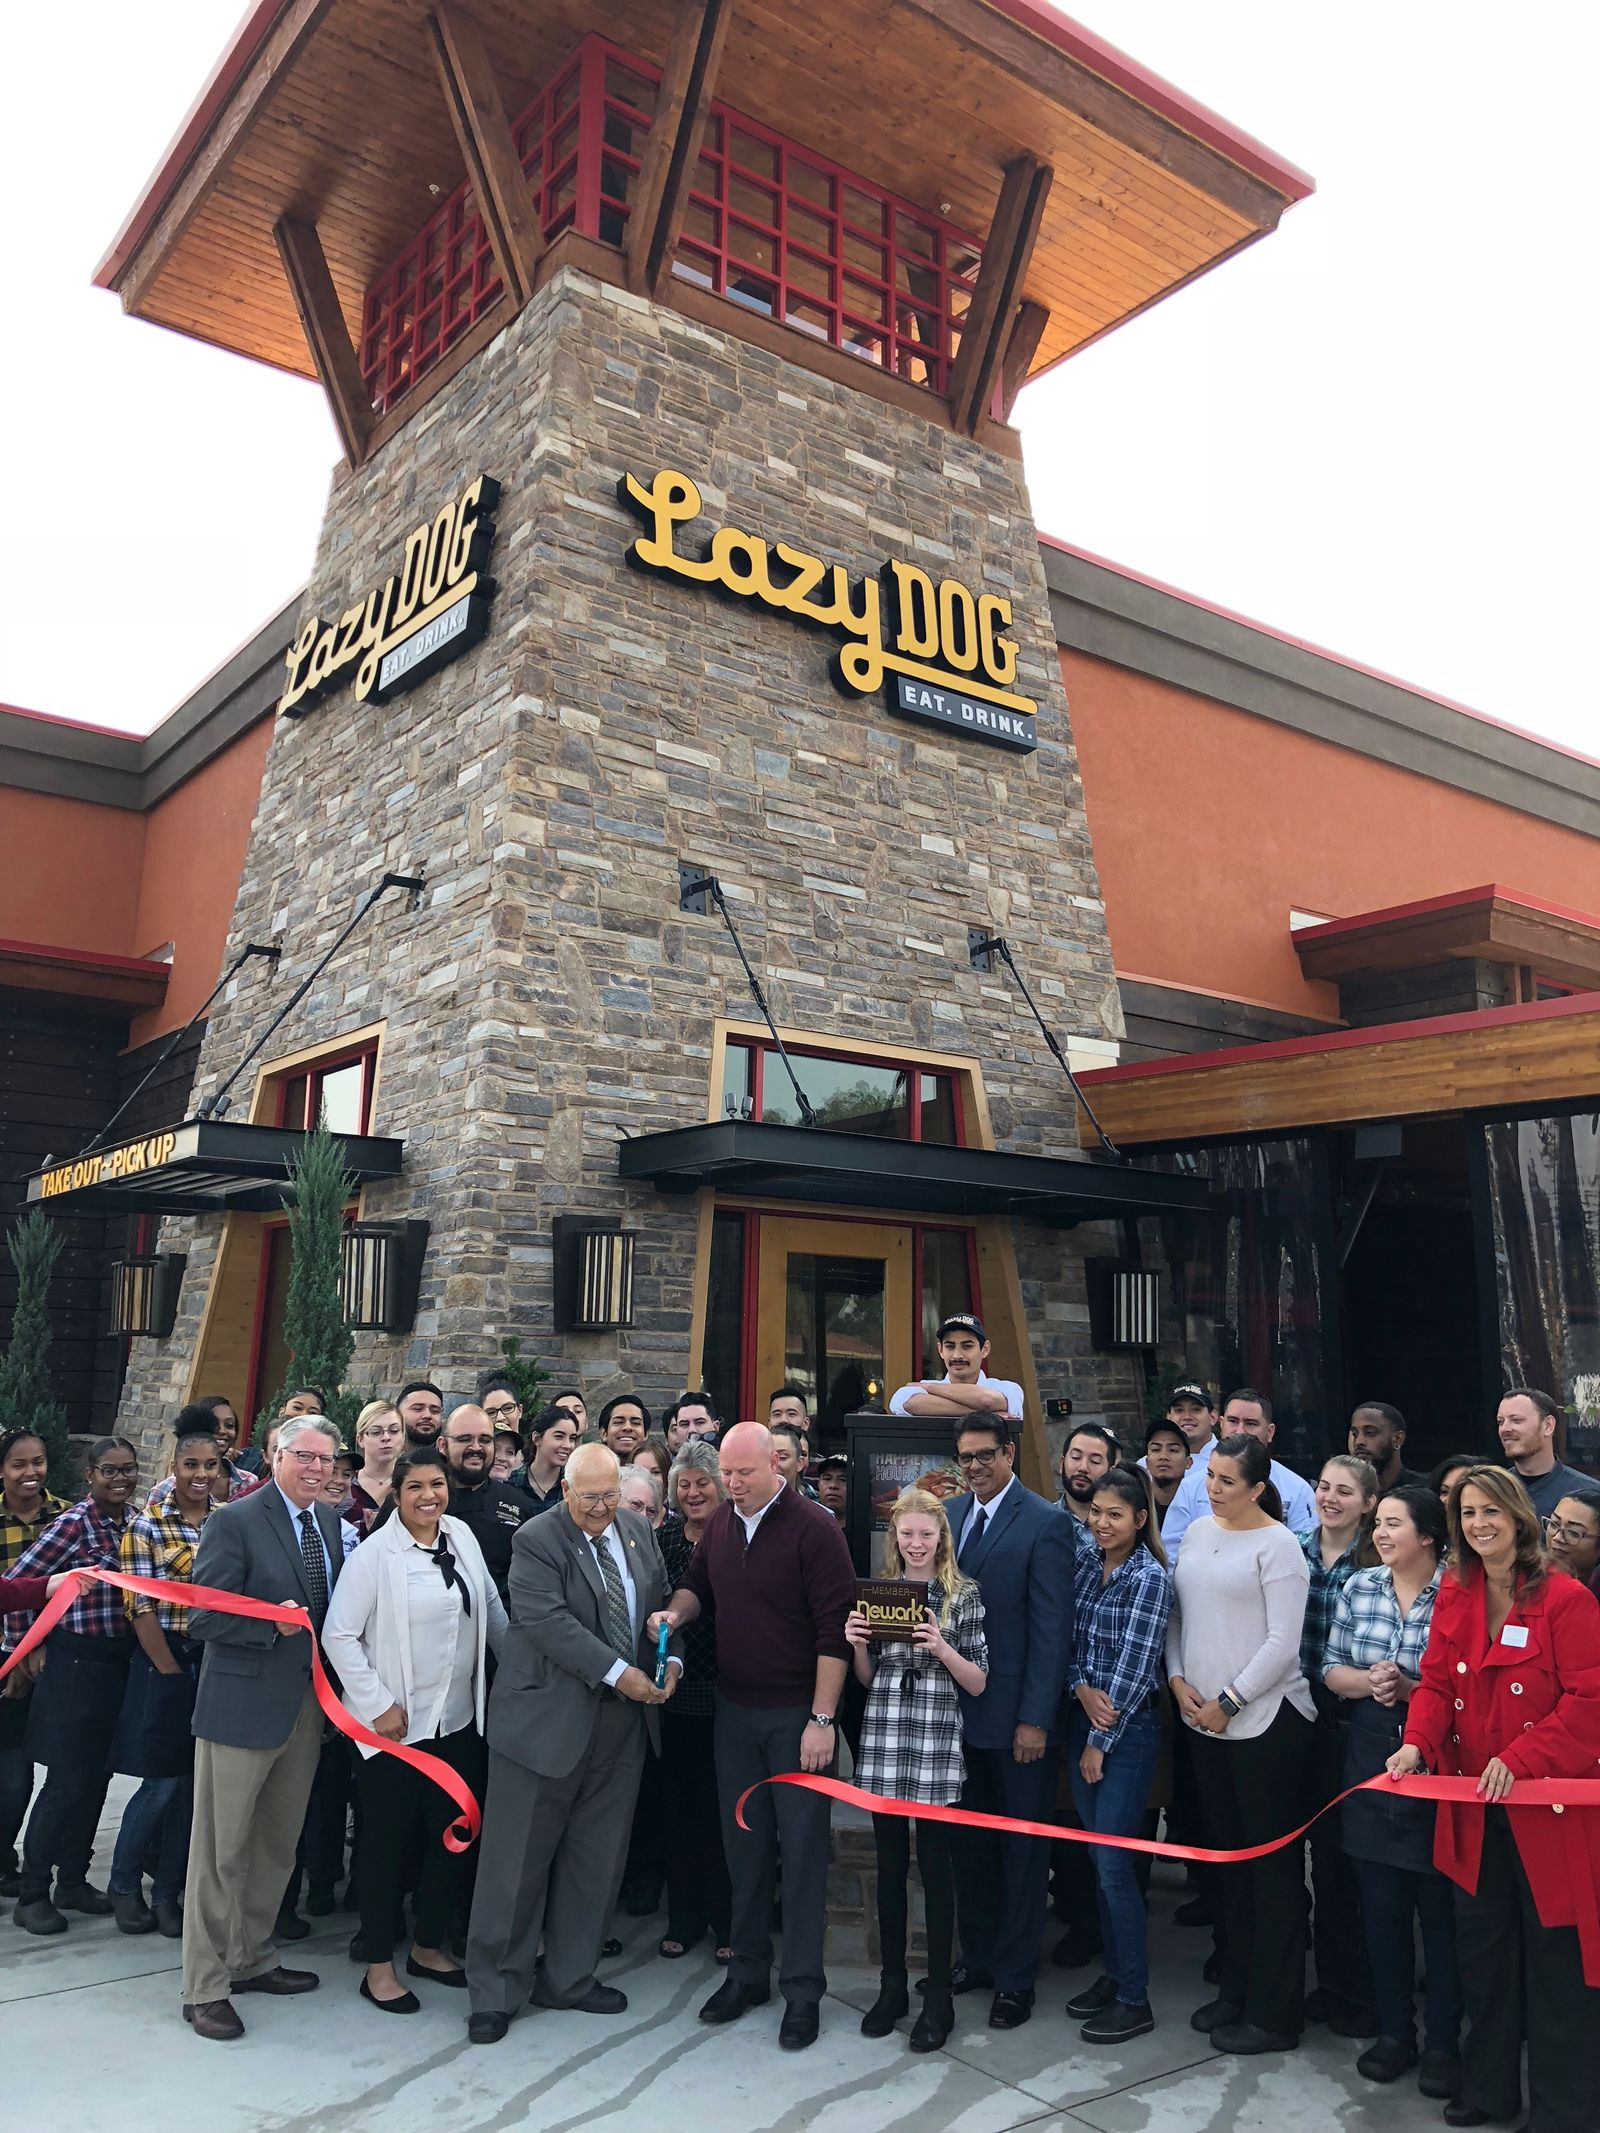 Lazy Dog Restaurant & Bar Opens in Newark, CA